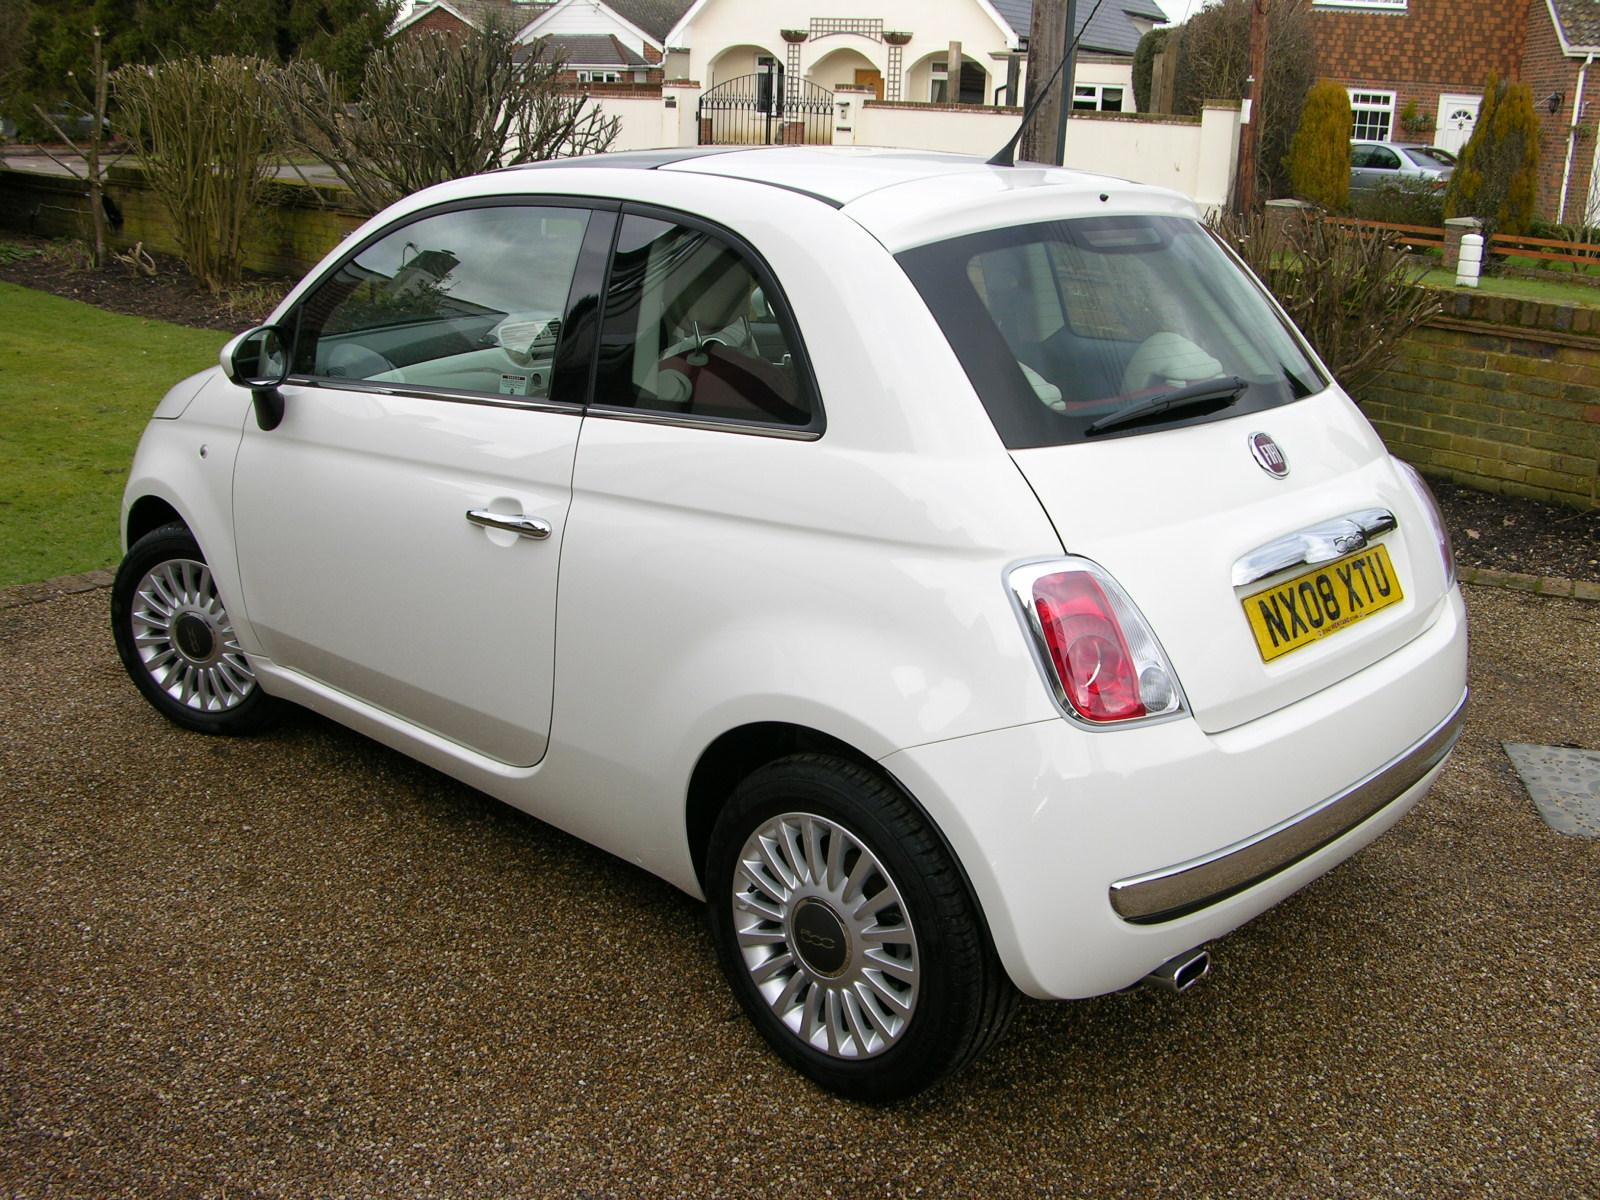 file 2008 fiat 500 1 4 lounge flickr the car spy 13 jpg wikimedia commons. Black Bedroom Furniture Sets. Home Design Ideas